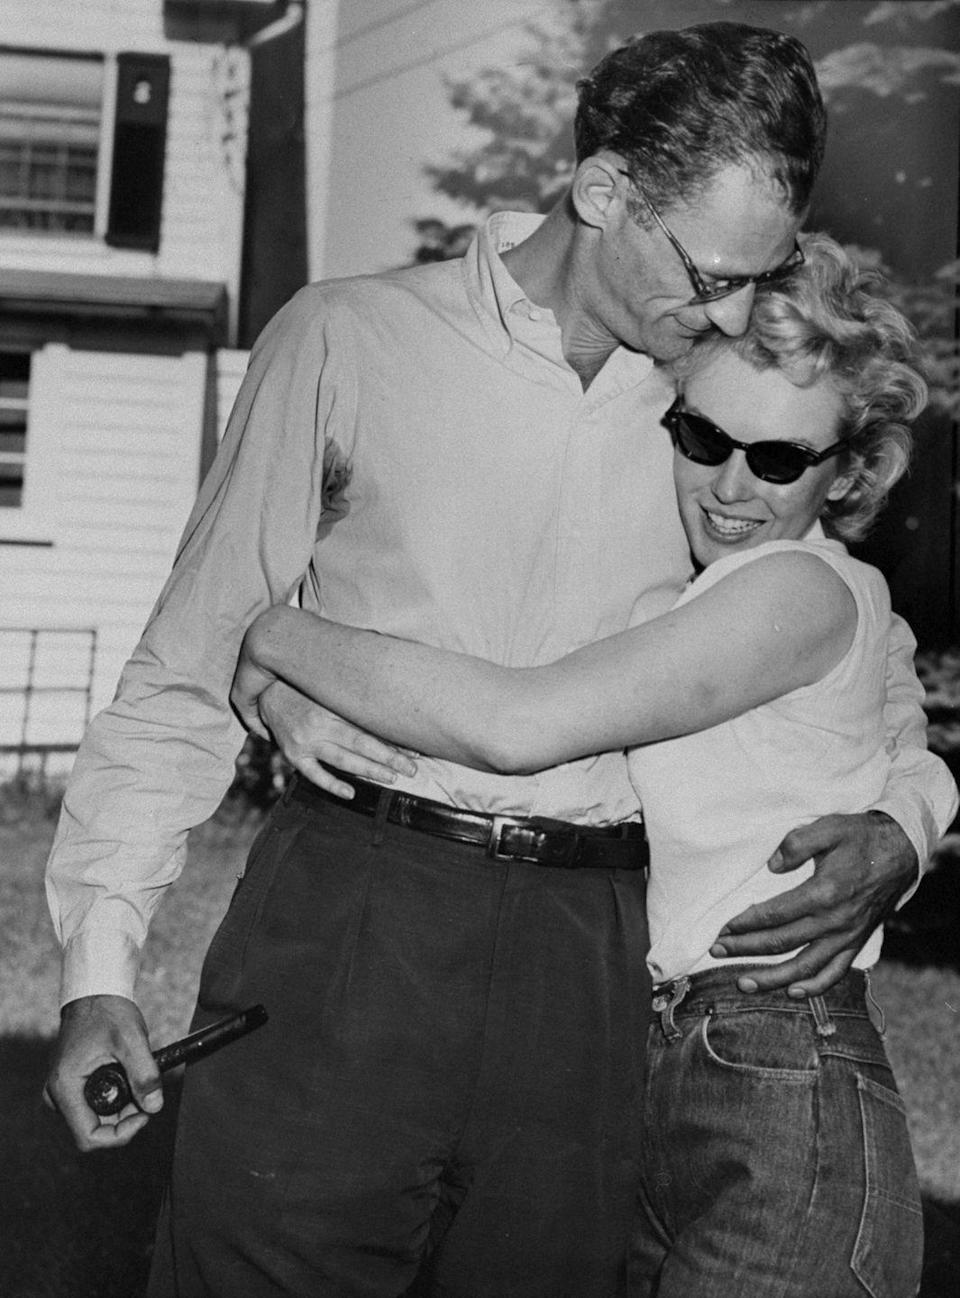 <p>Marilyn married Arthur Miller, a famous playwright best known for his Pultizer-award-winning play, <em>Death of a Salesman</em>. </p>